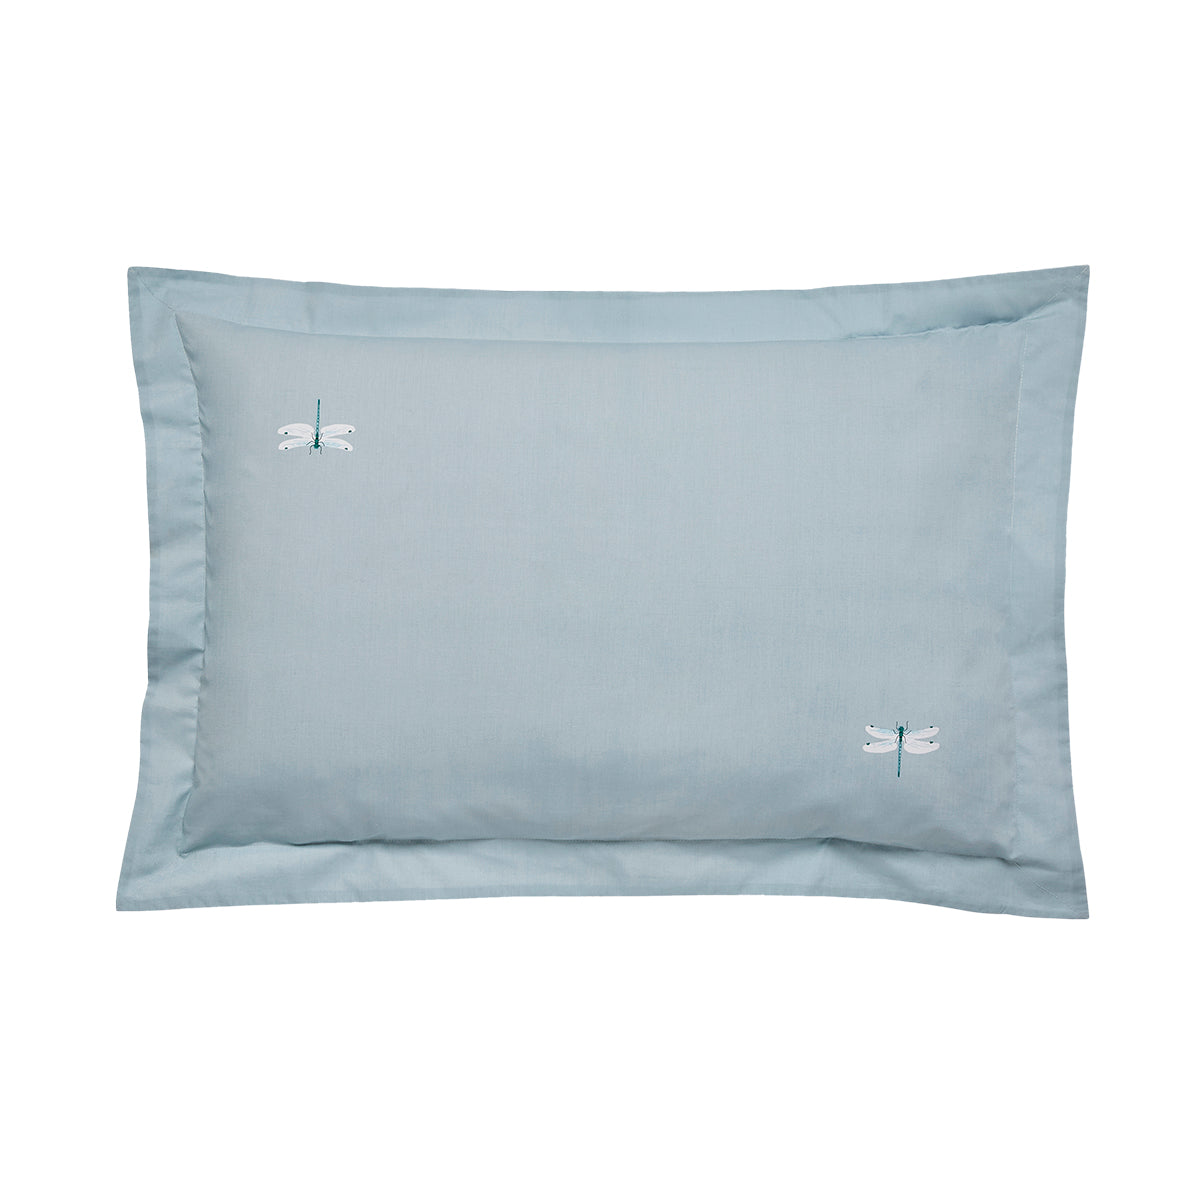 Dragonfly Pair of Oxford Pillowcases